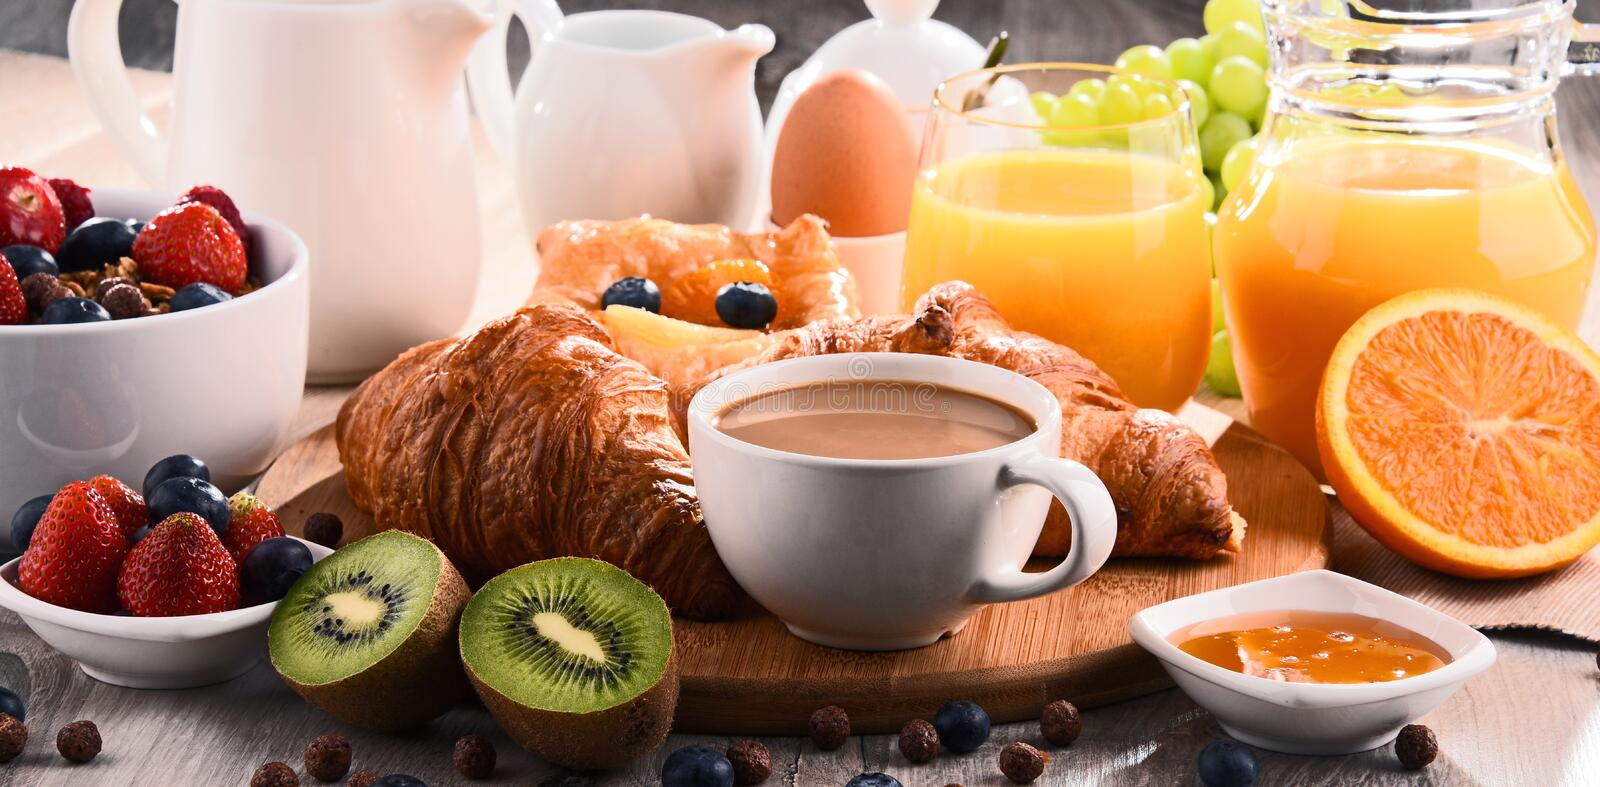 Breakfast served with coffee, juice, croissants and fruits royalty free stock photo